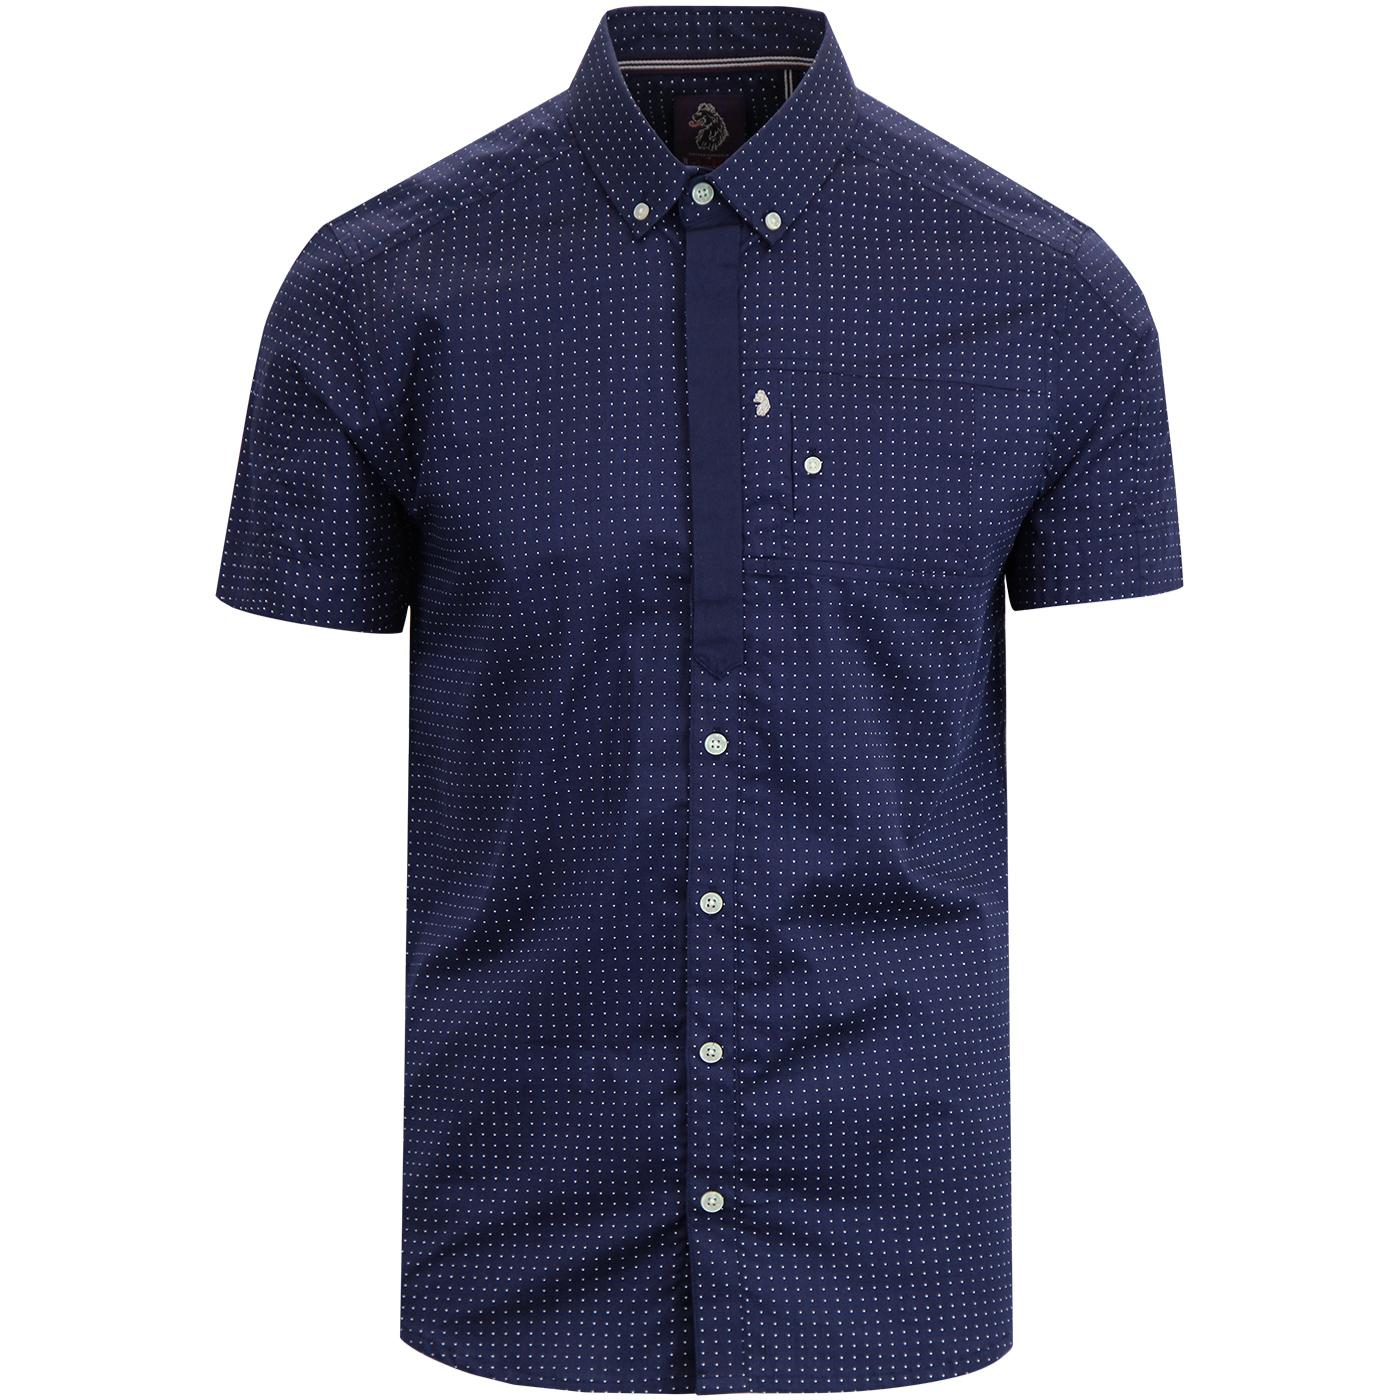 Wockneys Pencil 2 LUKE Slim Fit Polka Dot Shirt N